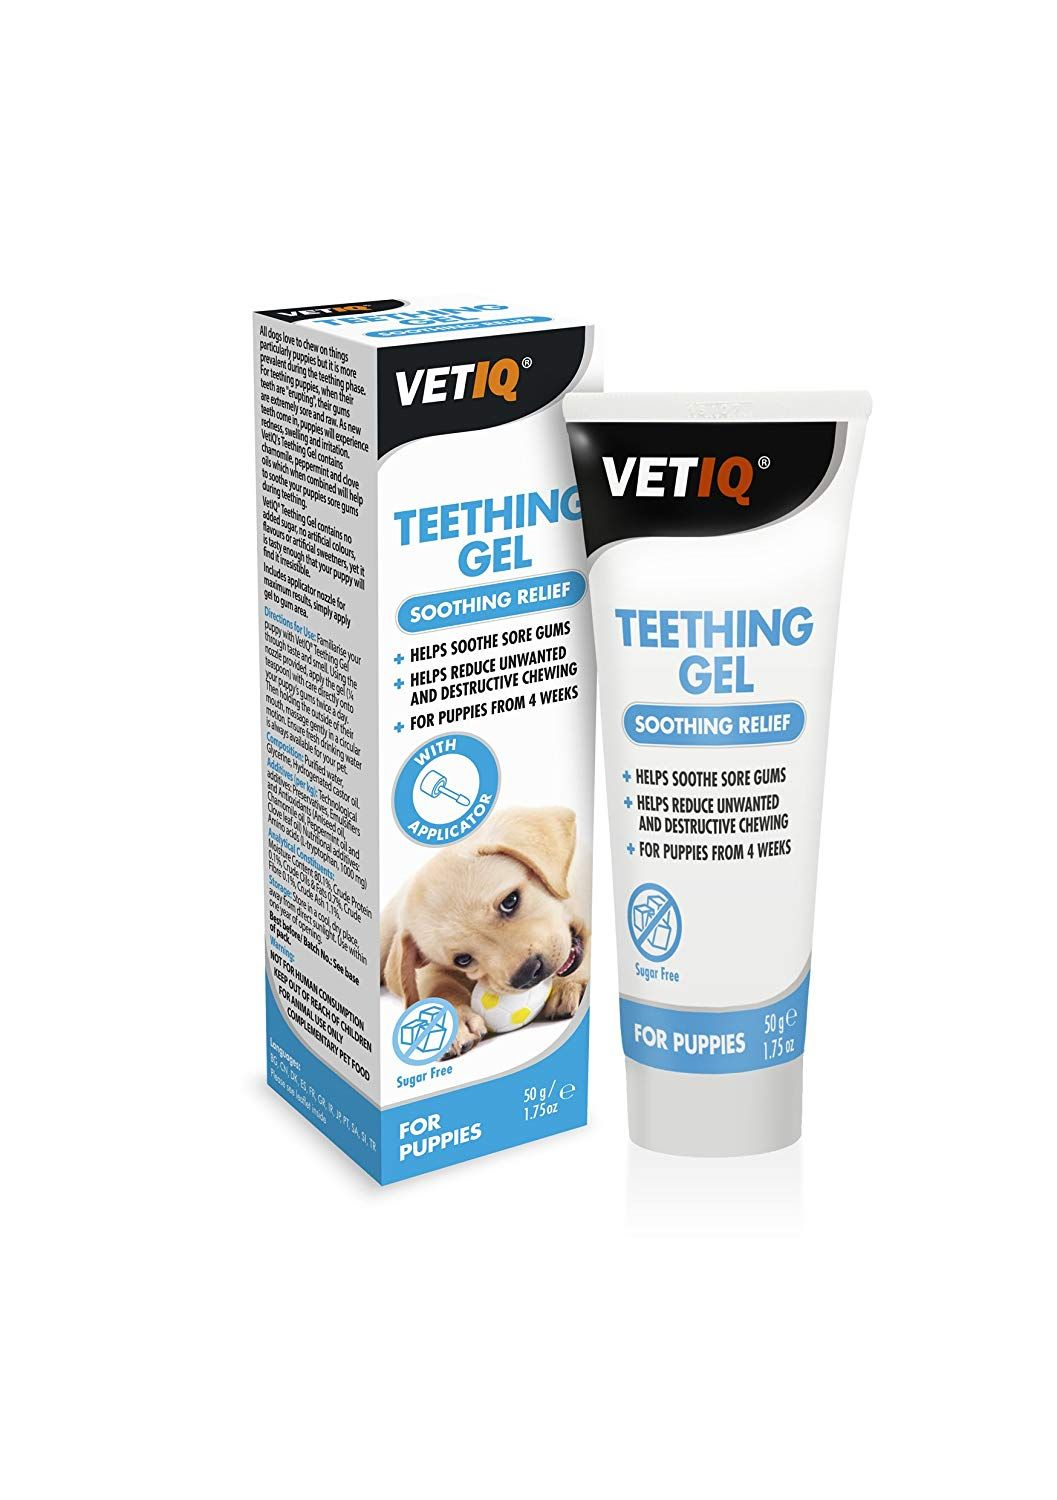 Mark and chappell teething gel for puppies 175fluid